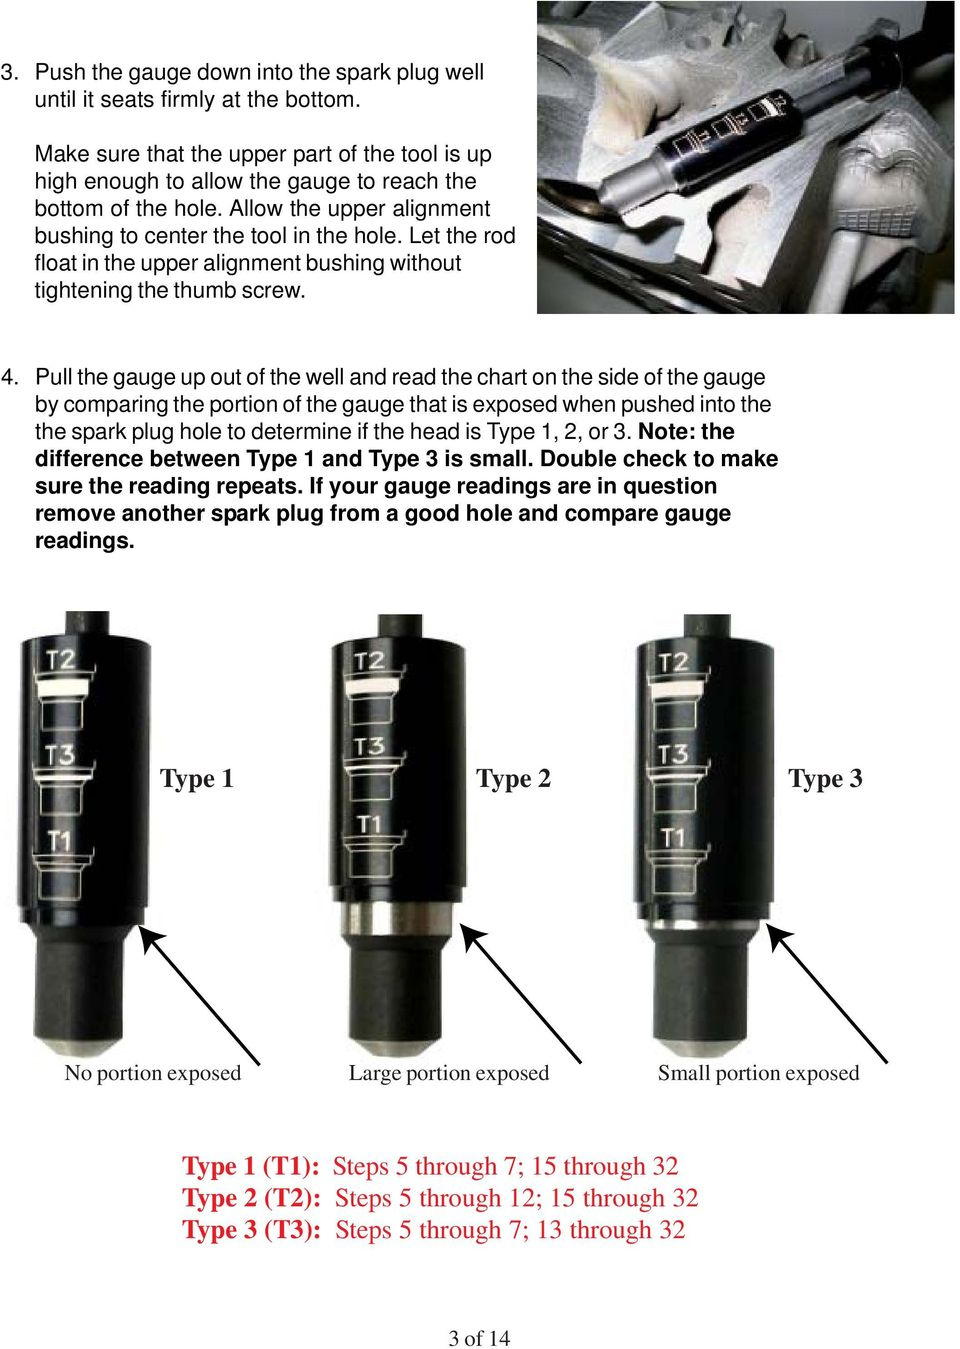 Pull the gauge up out of the well and read the chart on the side of the gauge by comparing the portion of the gauge that is exposed when pushed into the the spark plug hole to determine if the head